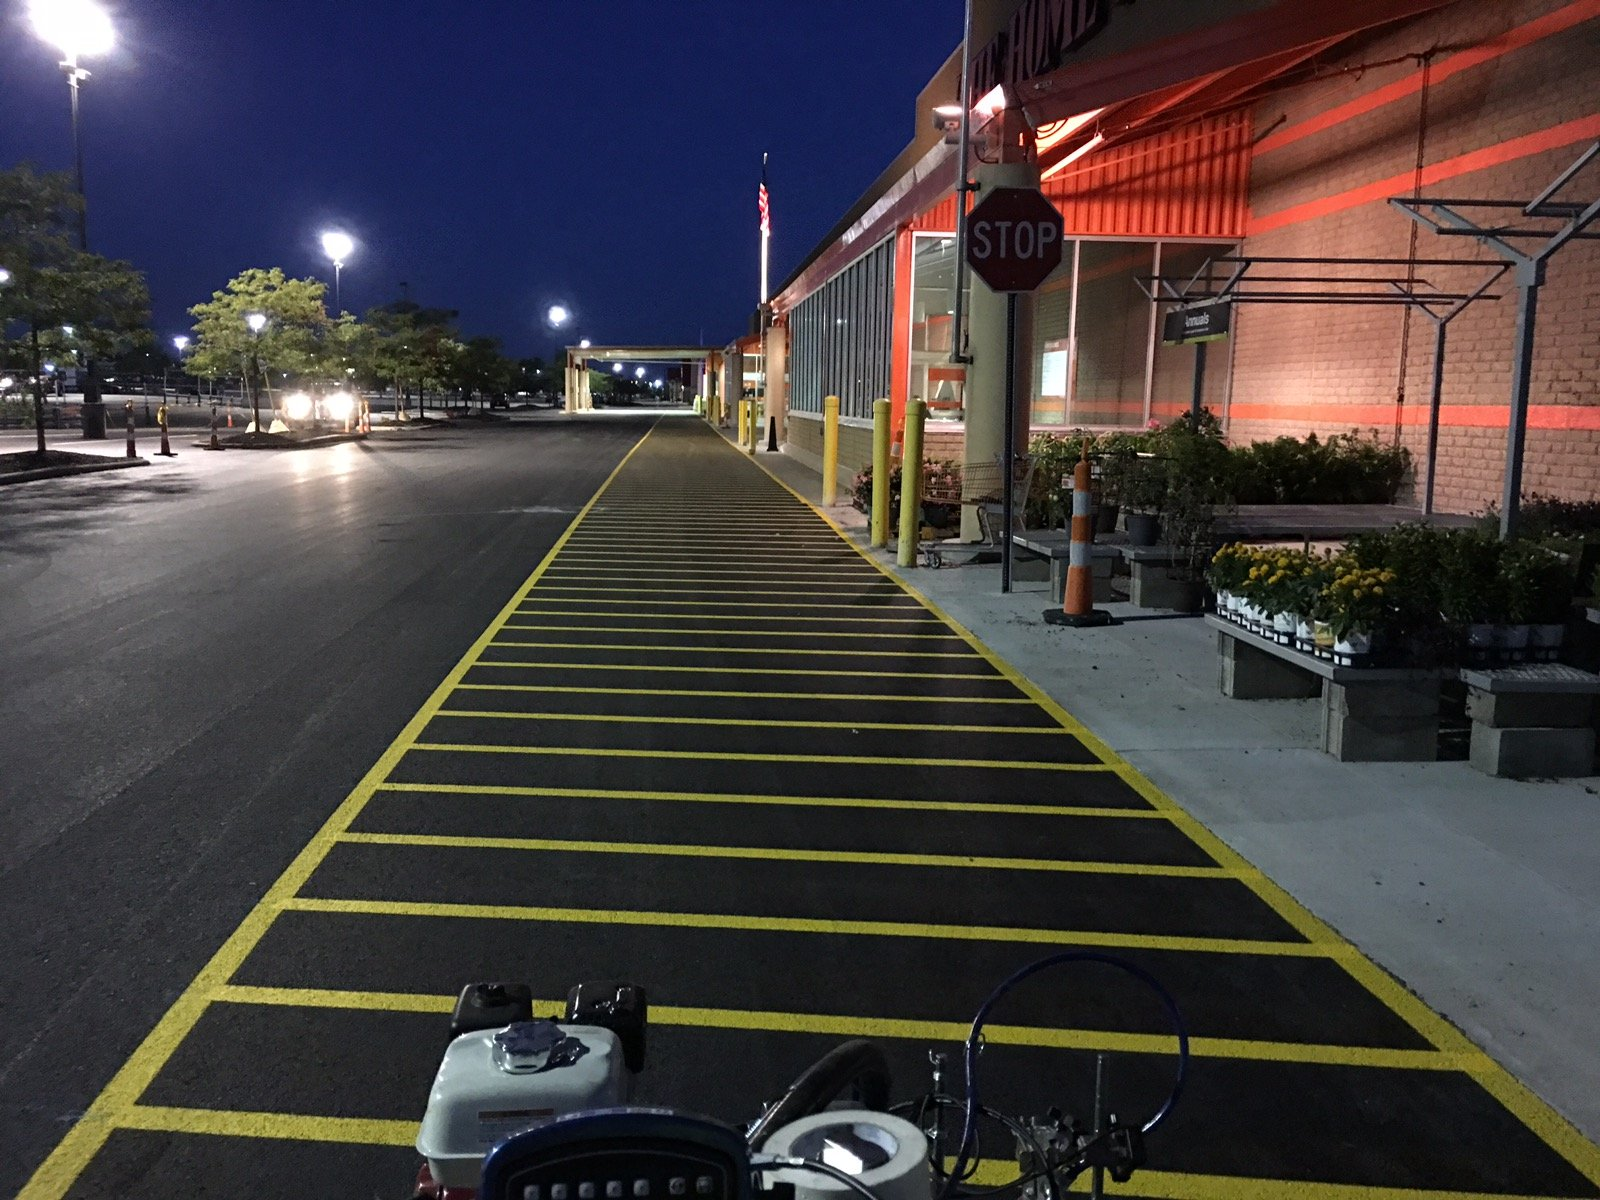 Home Depot fire lane